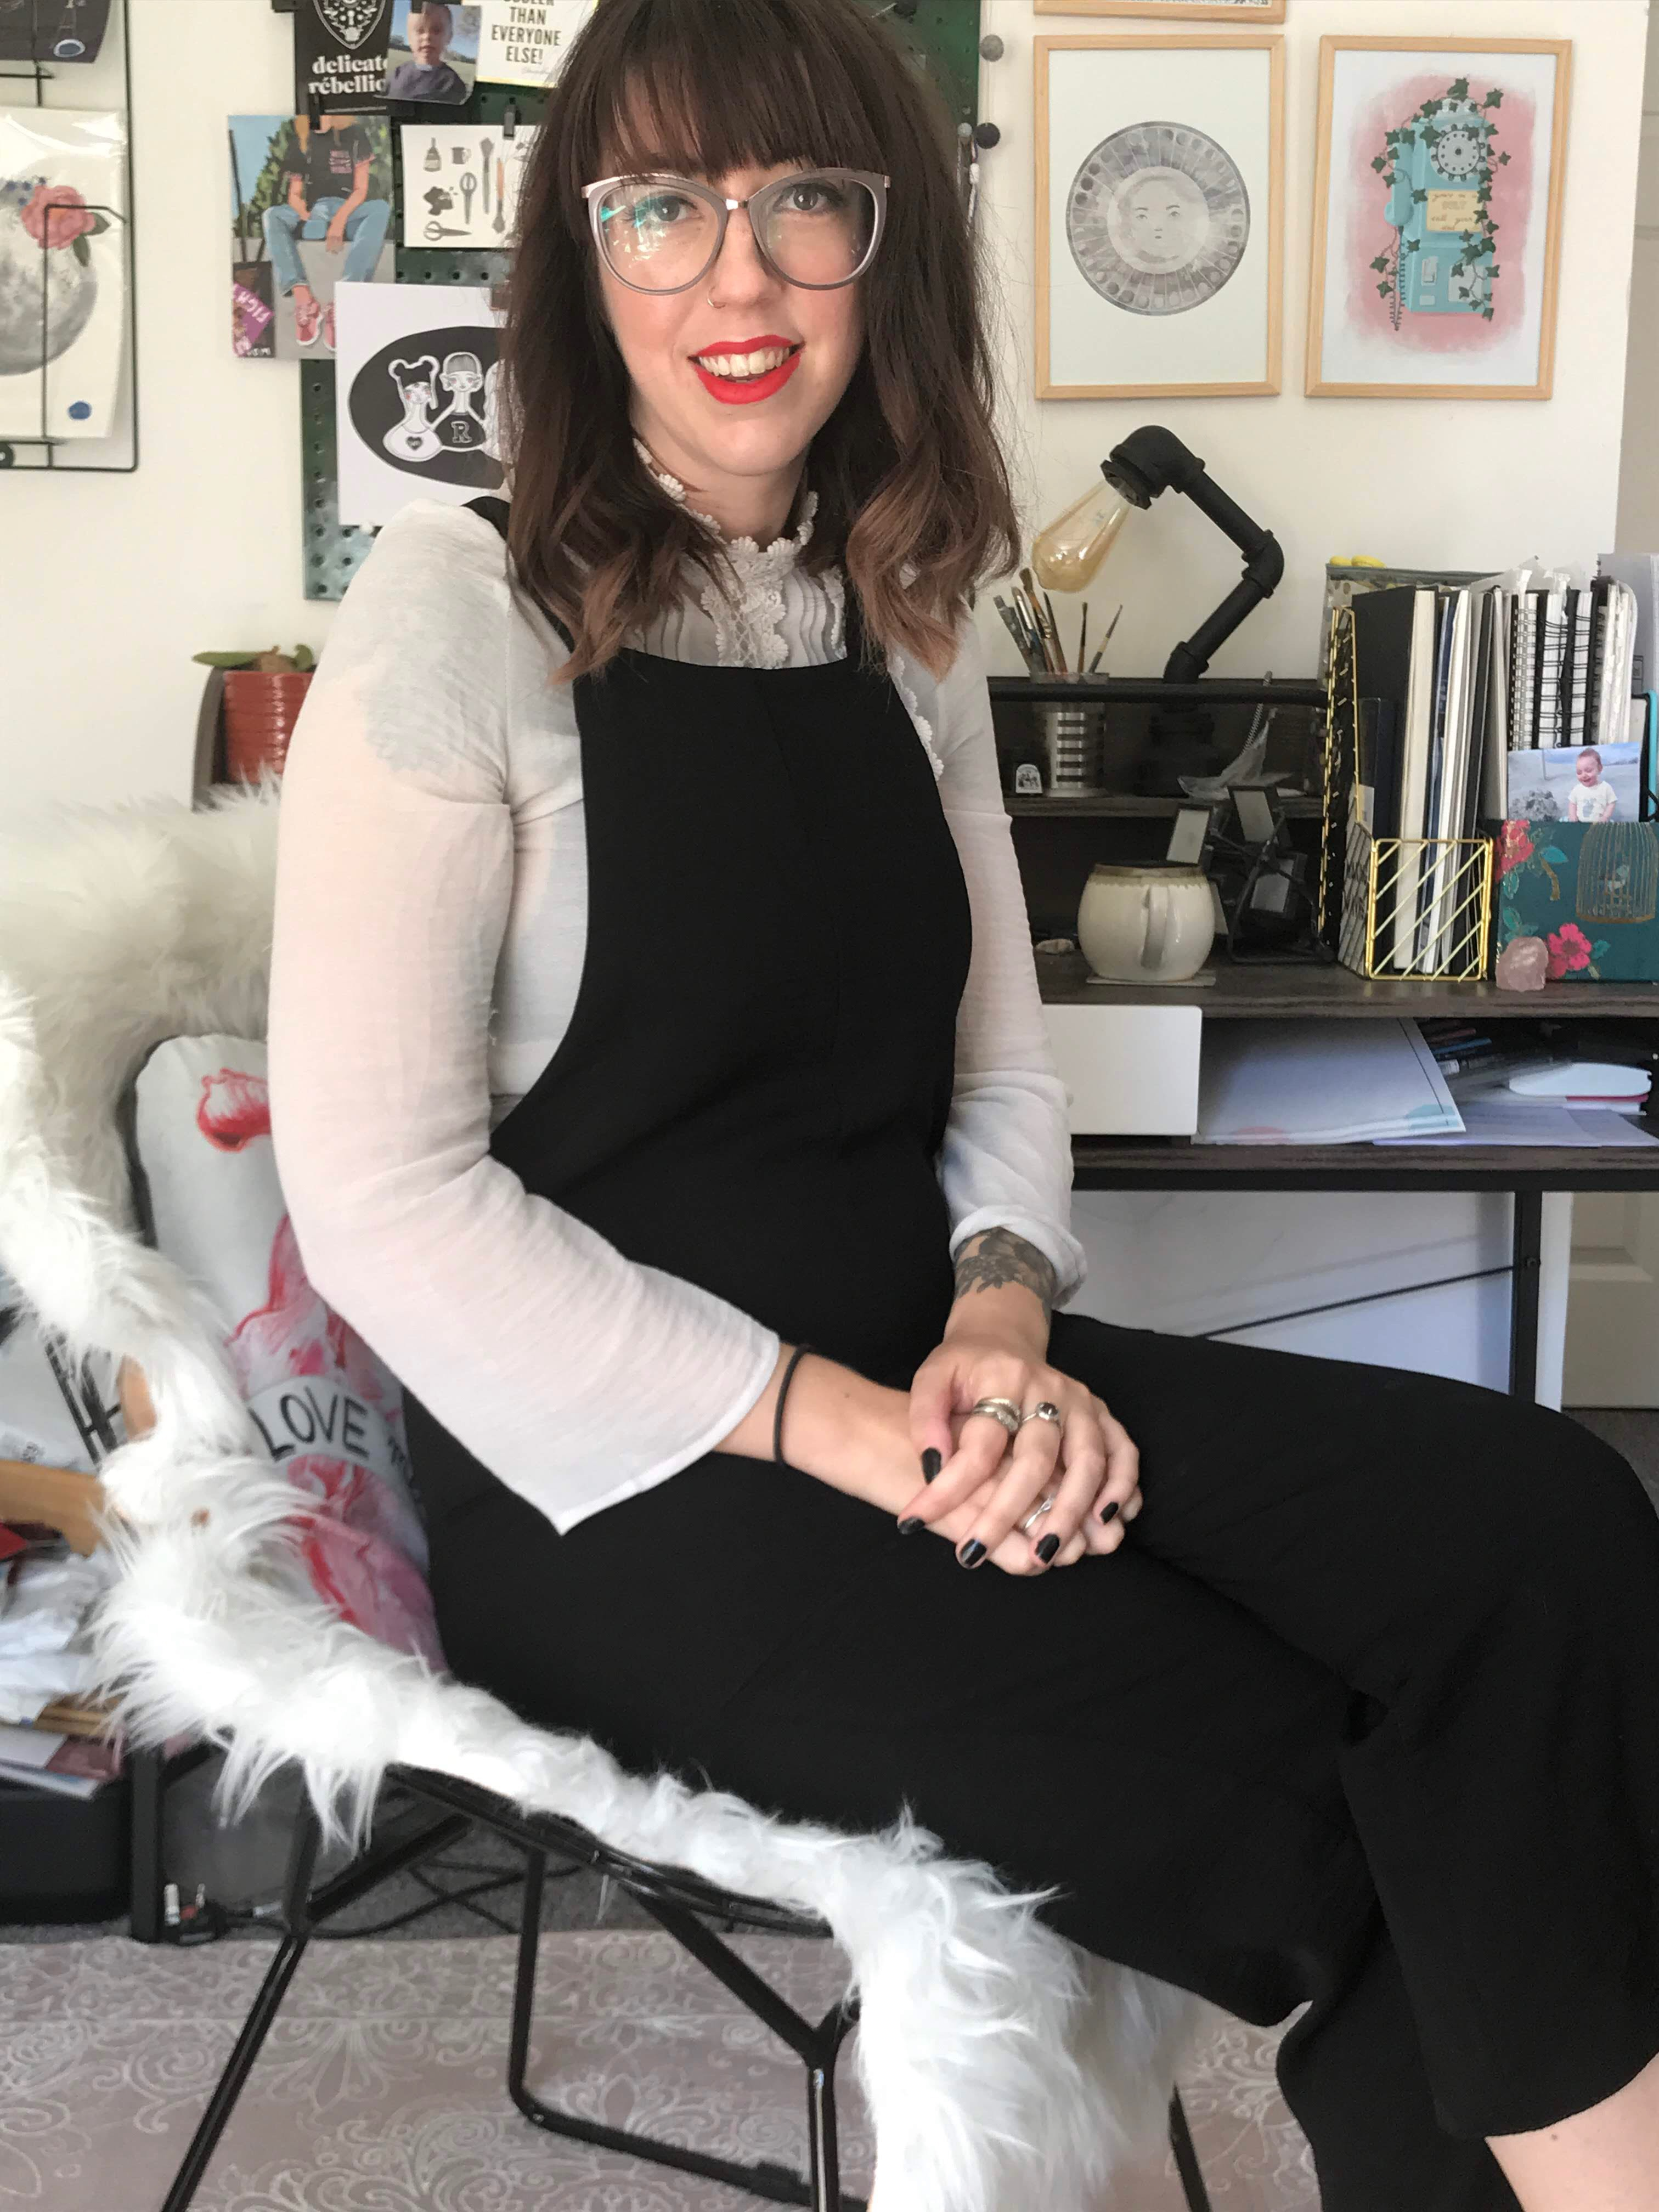 Hannah Raymond of ink and tot sitting in chair in front of desk with art work on the wall behind